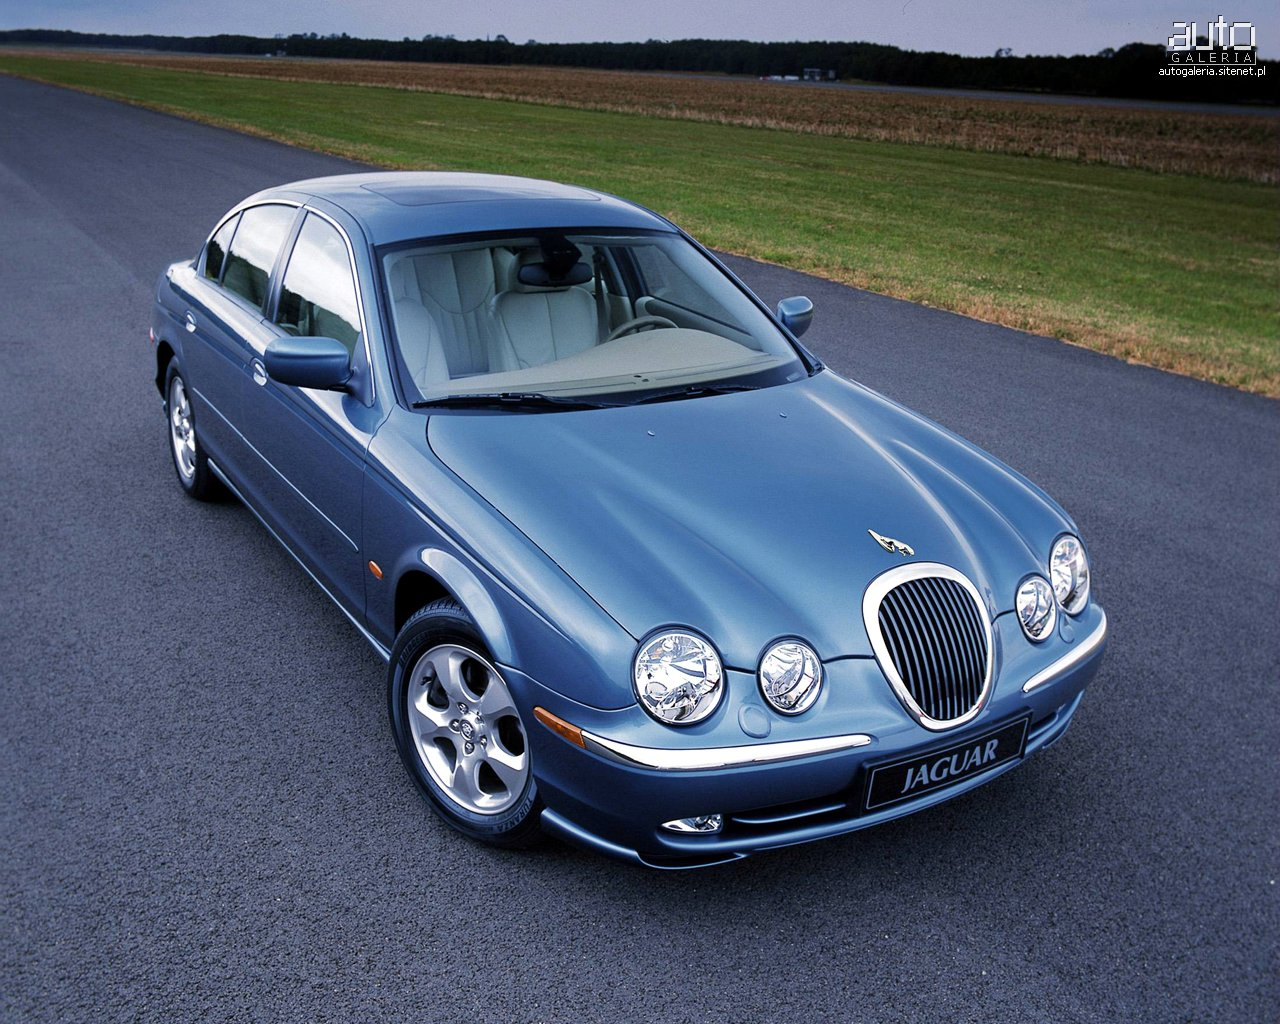 Jaguar S Type Photo 08